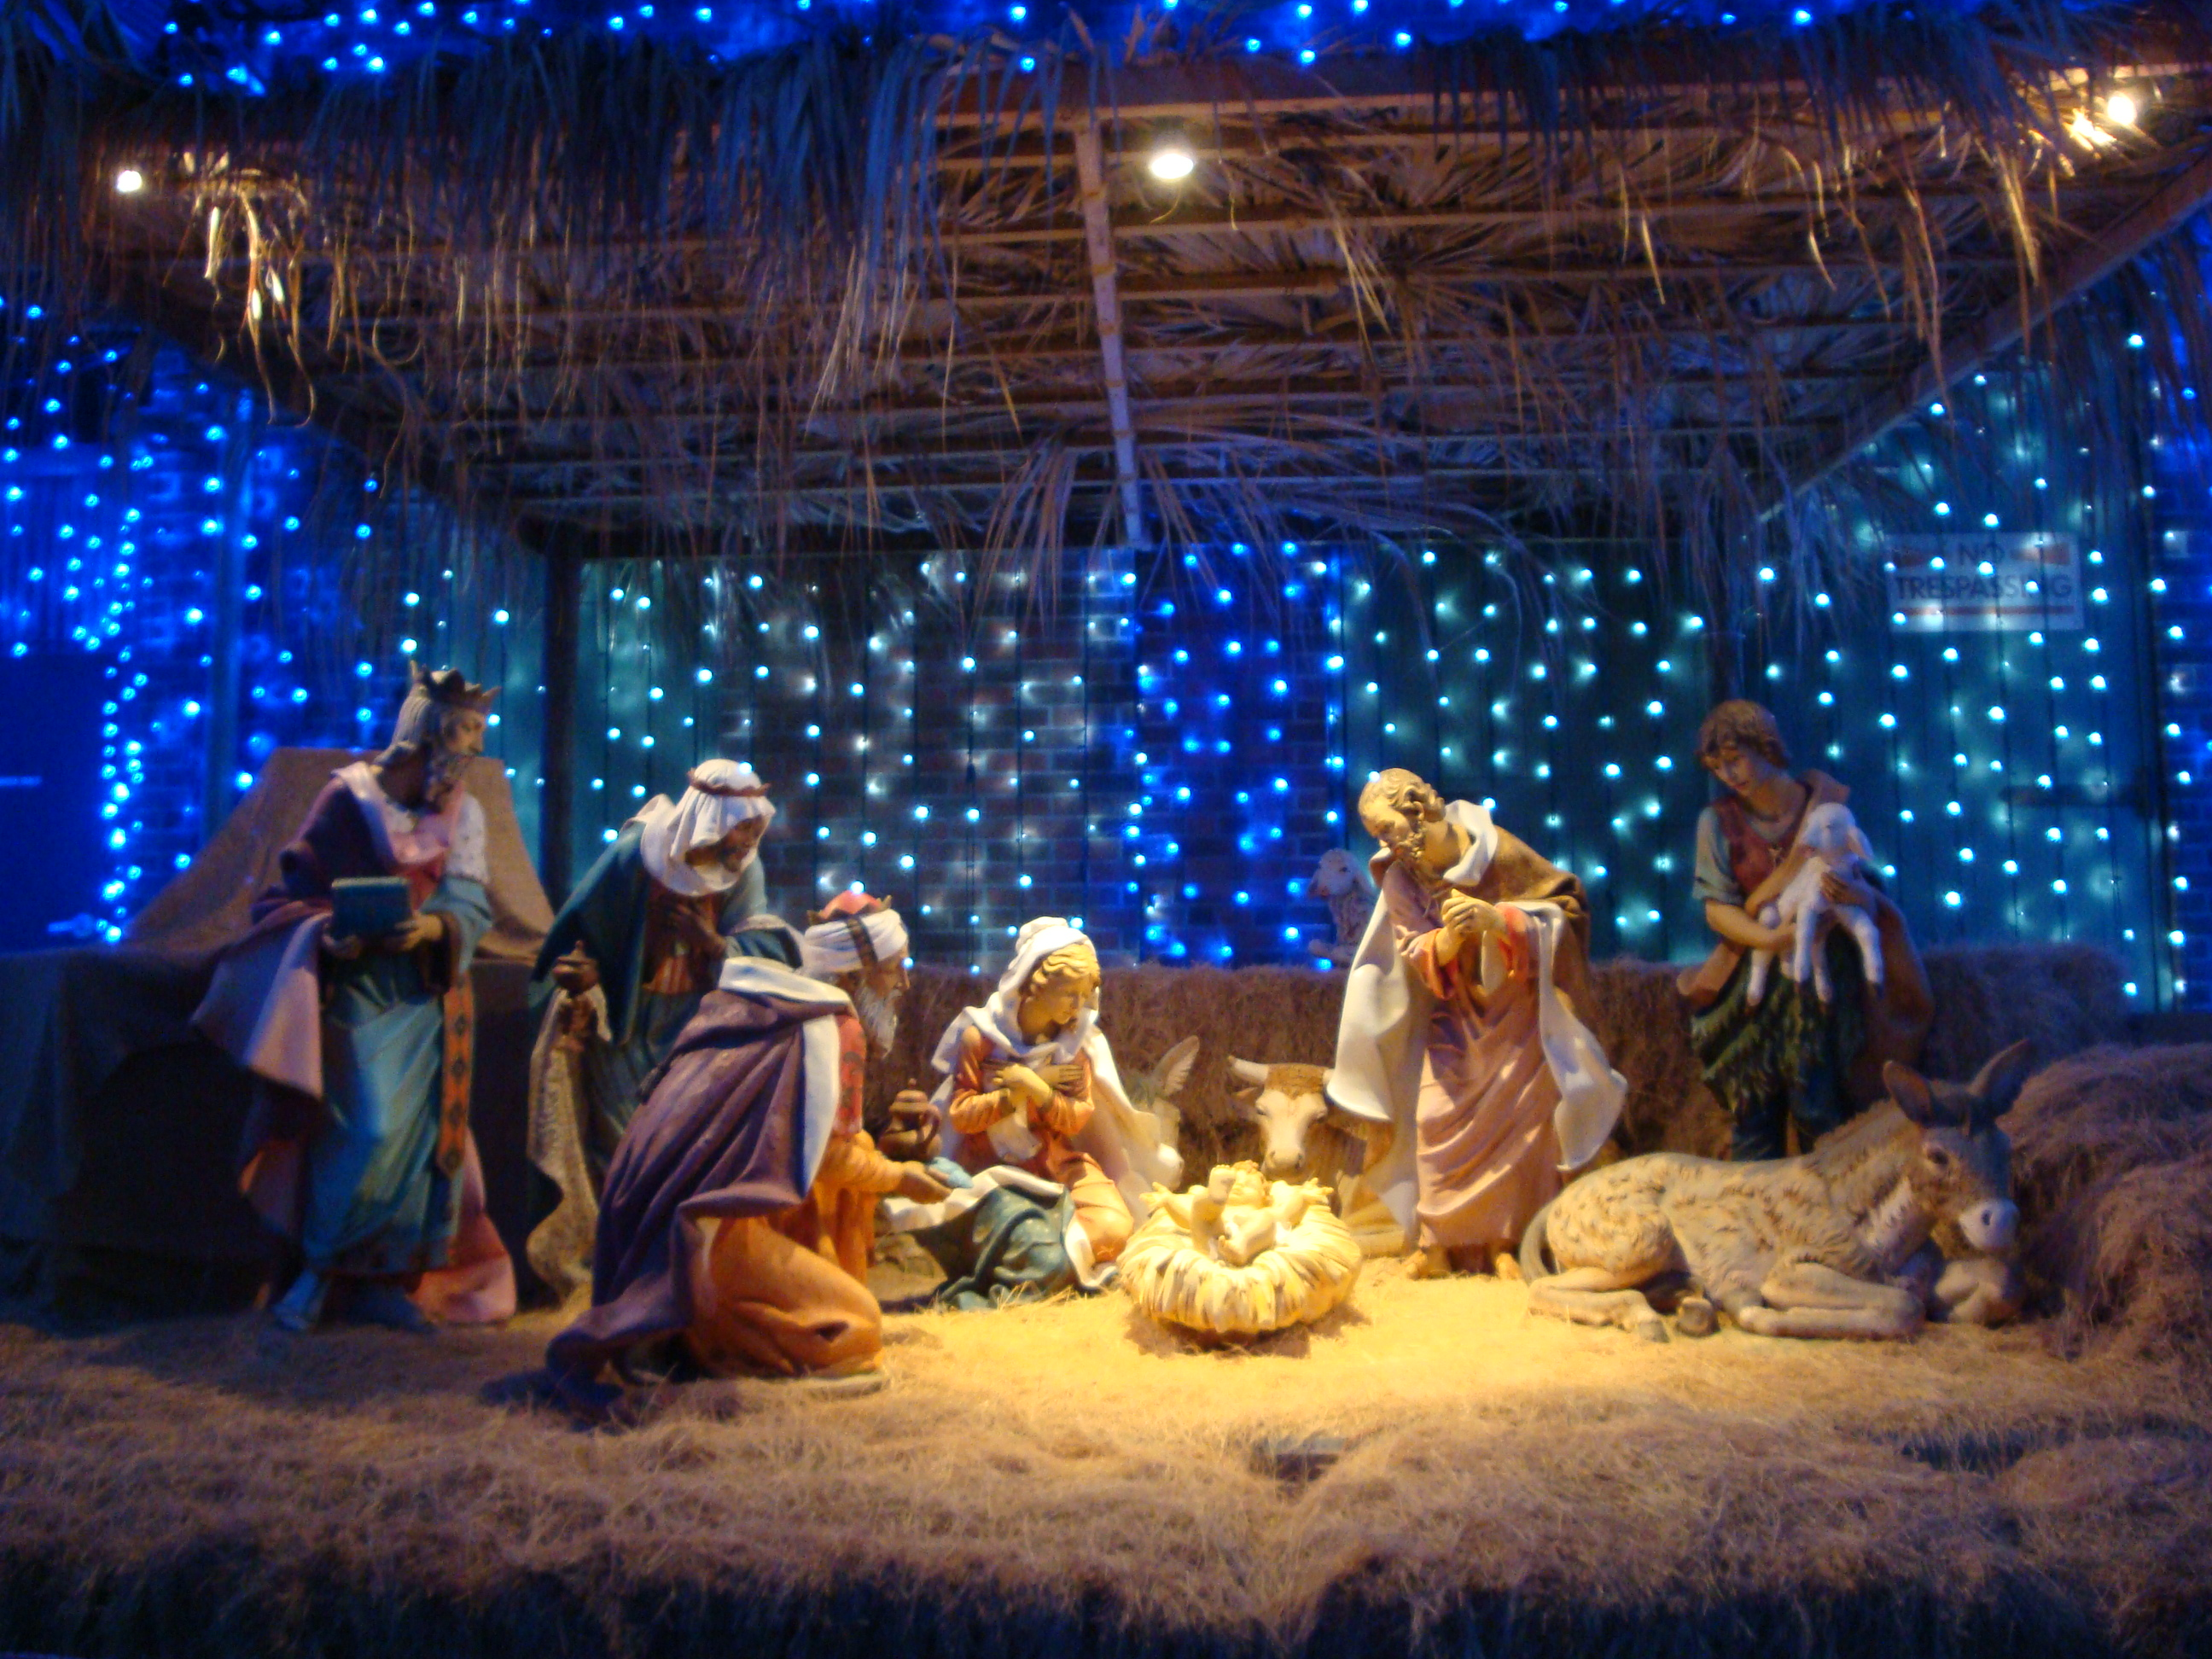 Download Christmas Crib Wallpaper Gallery